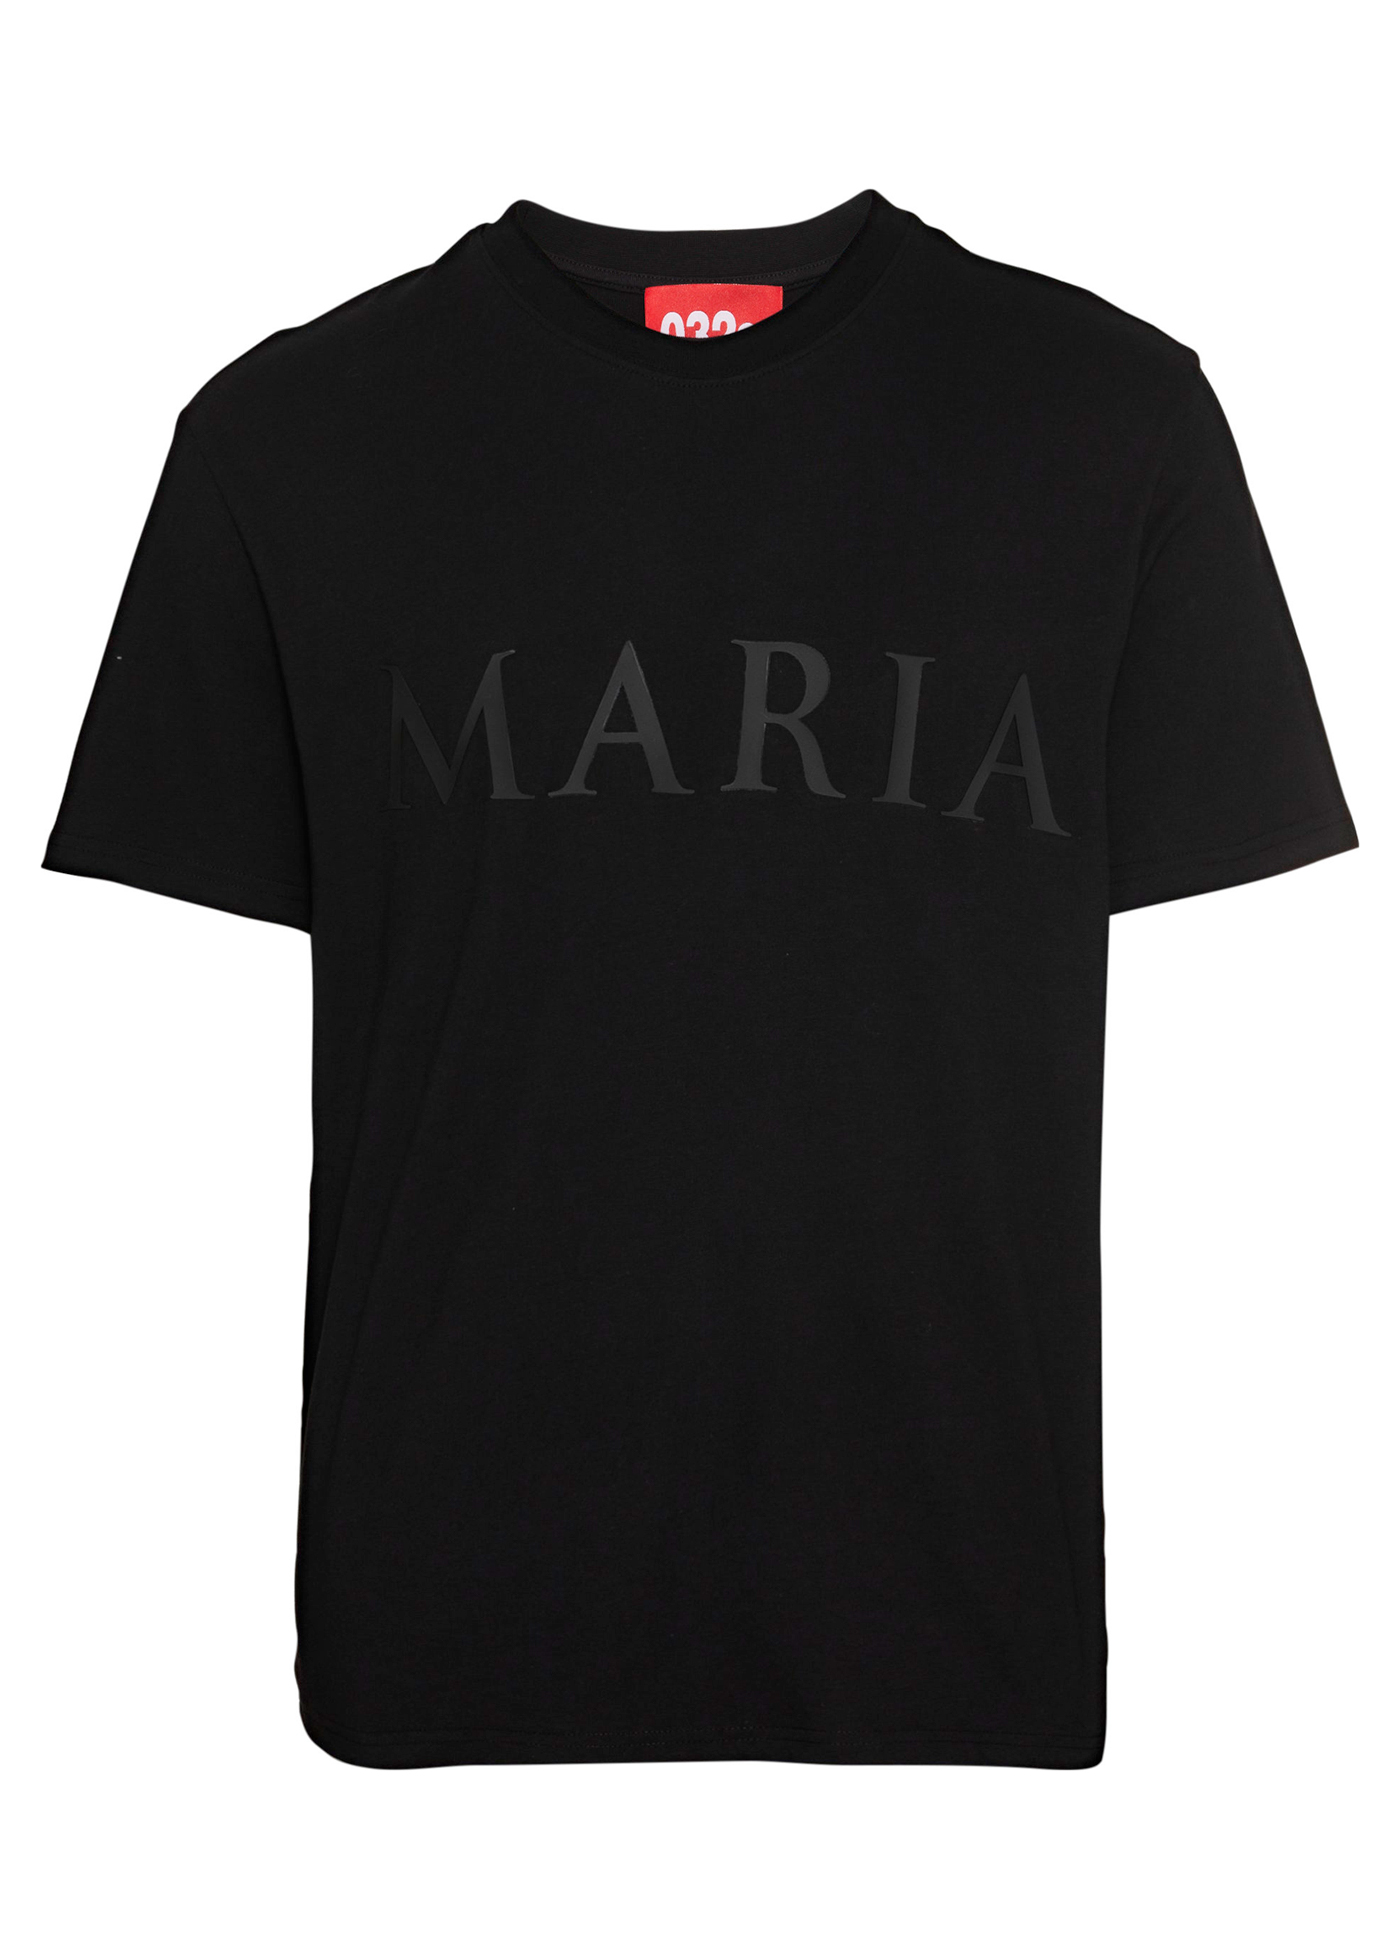 3-D 'MARIA' S/S T-SHIRT image number 0